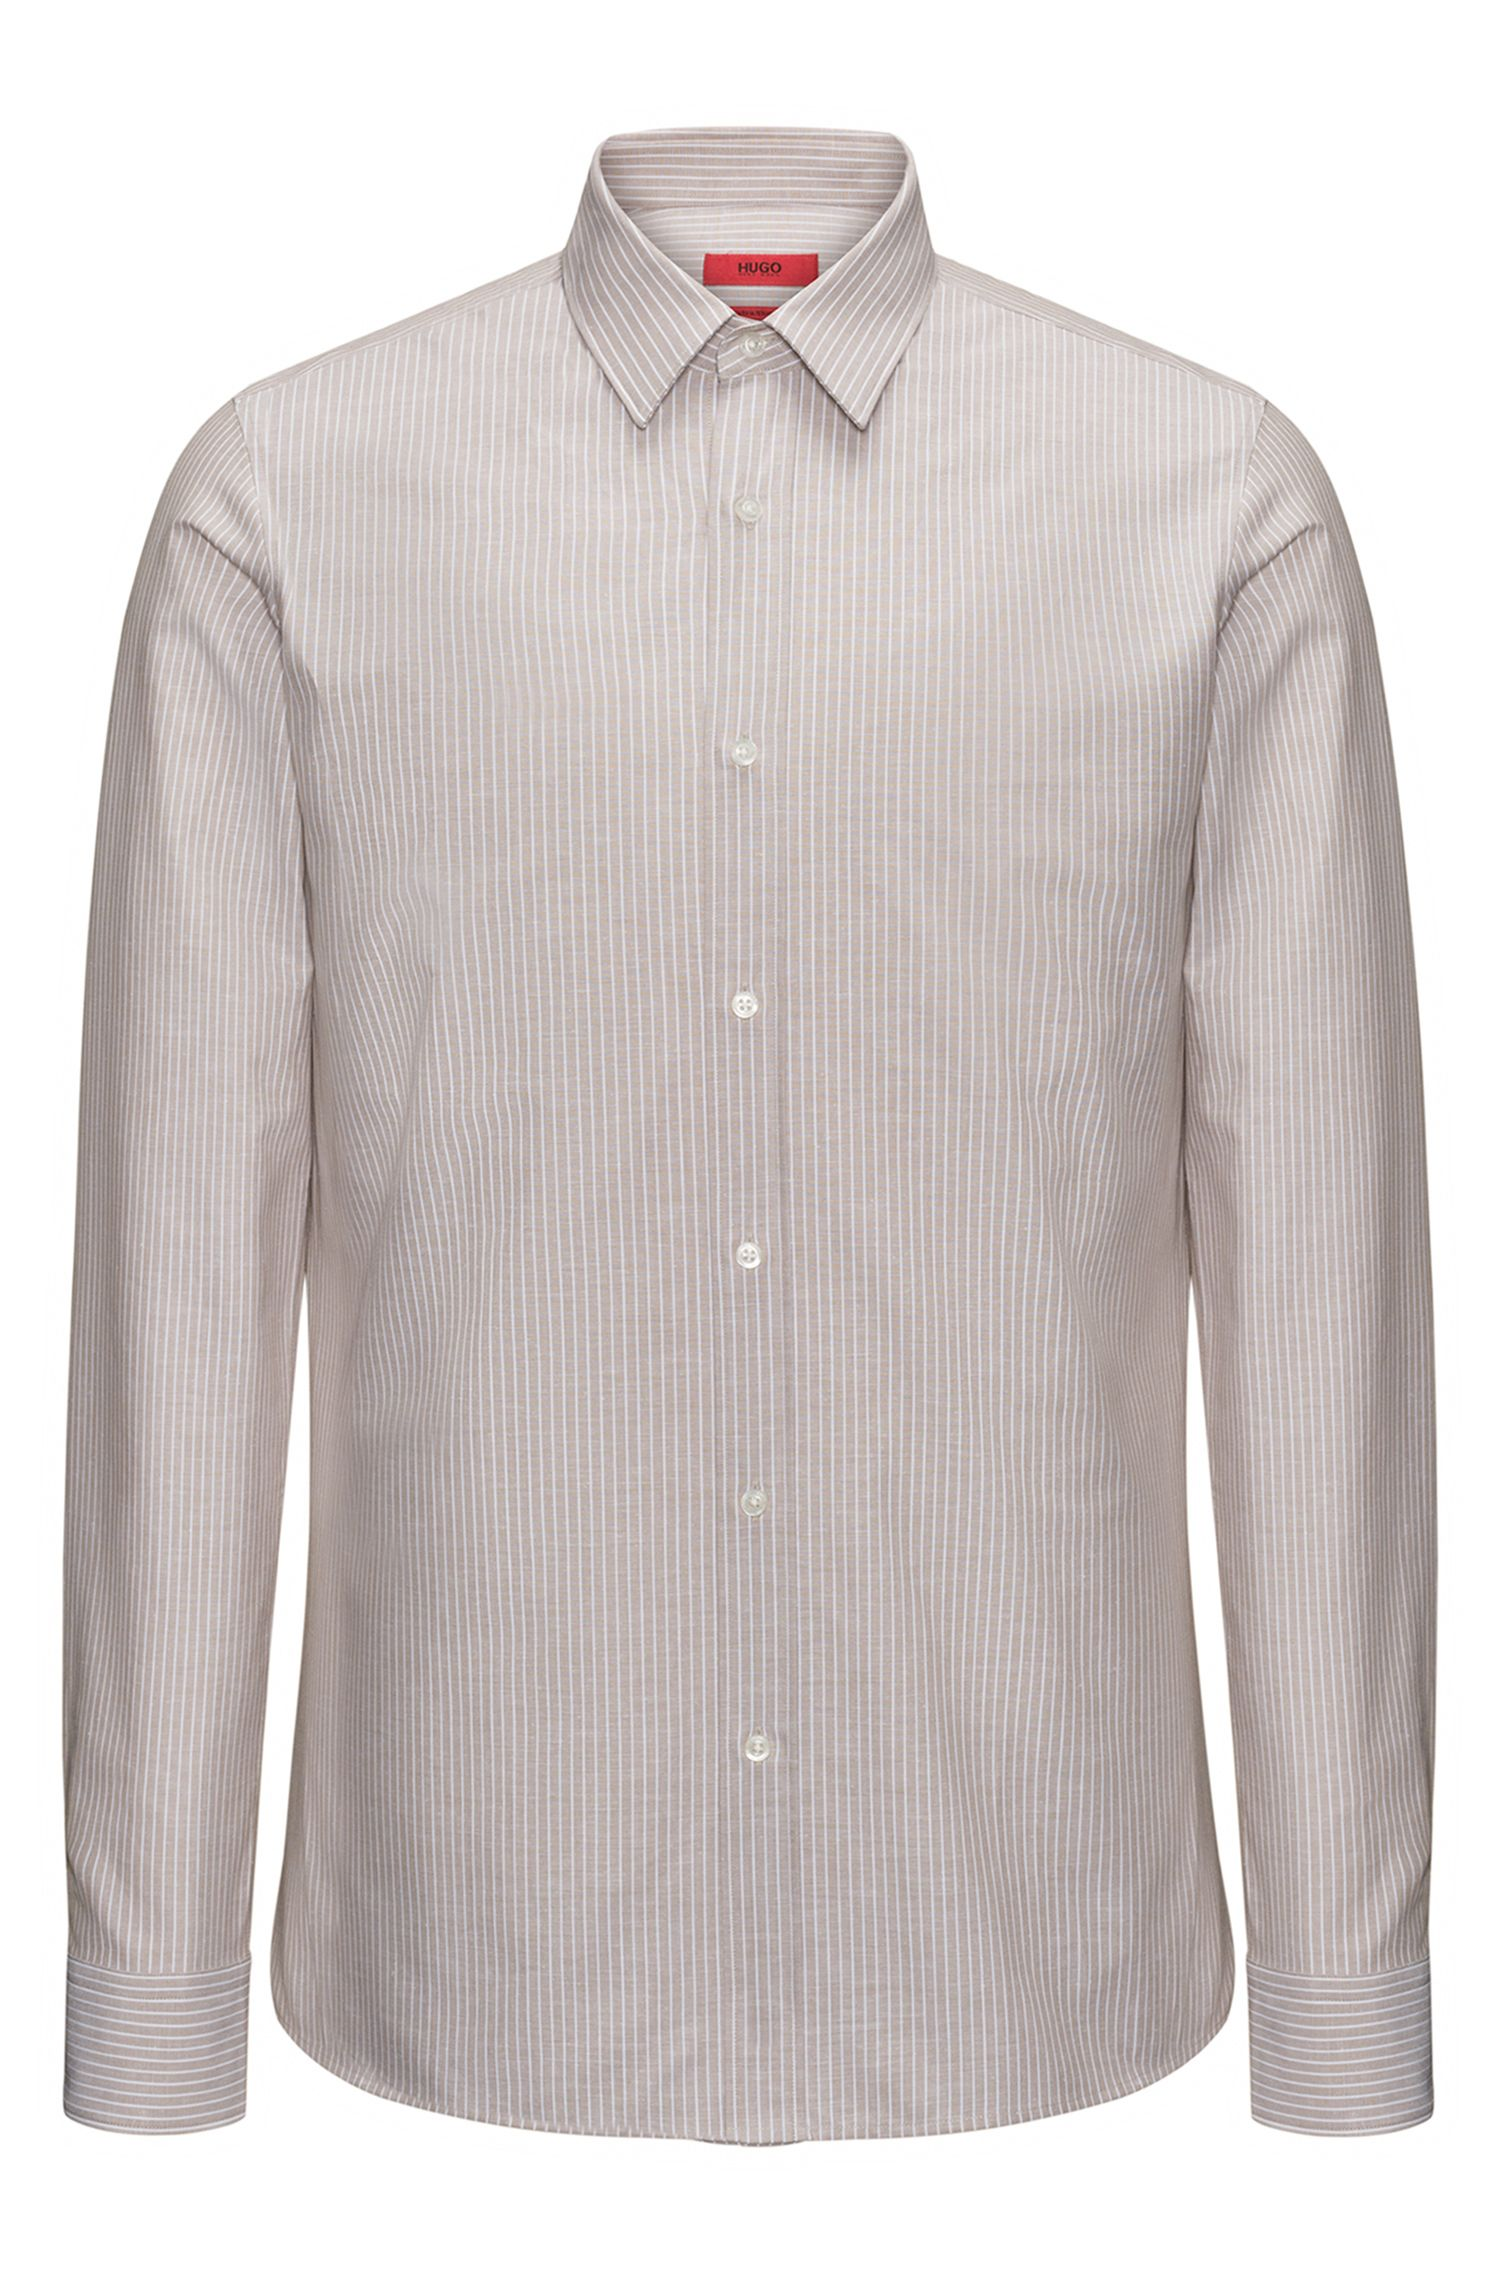 Striped cotton-blend shirt in an extra-slim fit